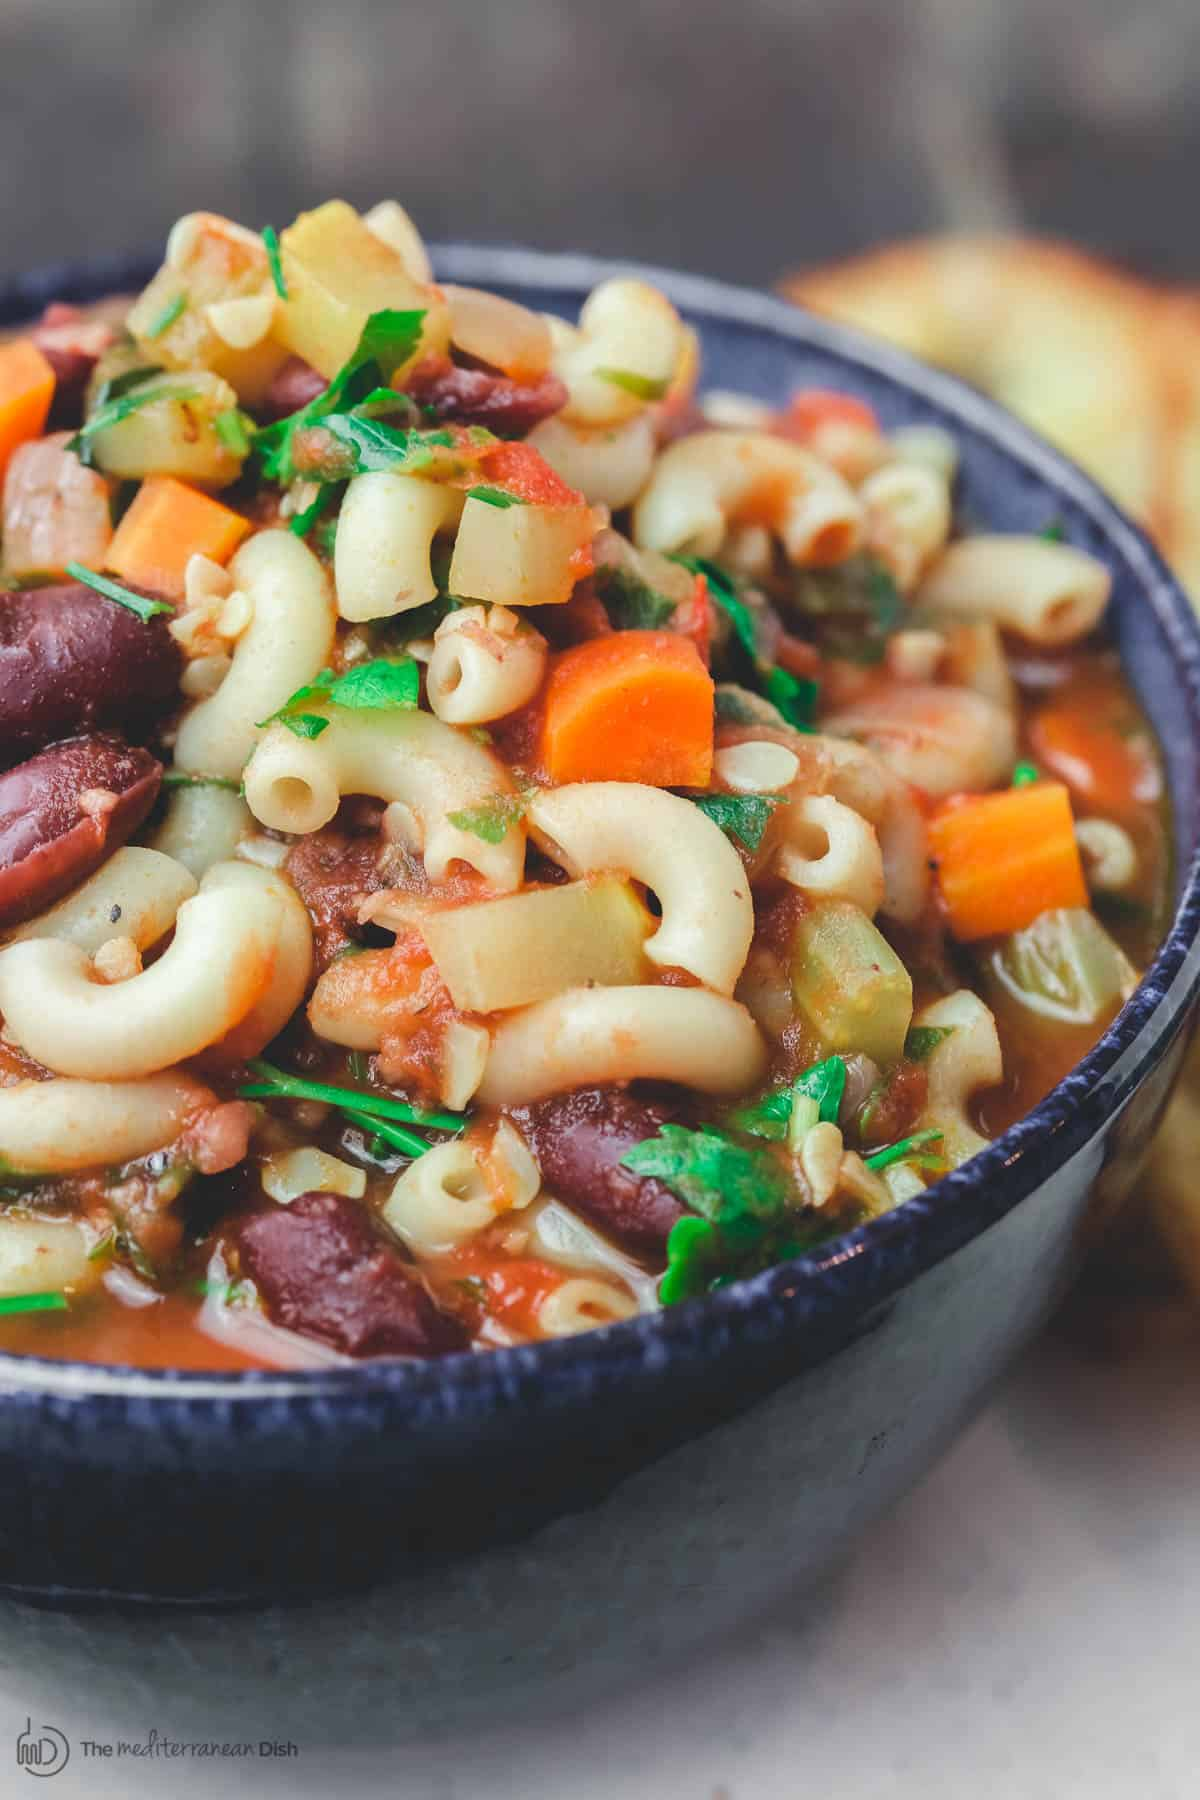 Minestrone soup recipe served in a bowl